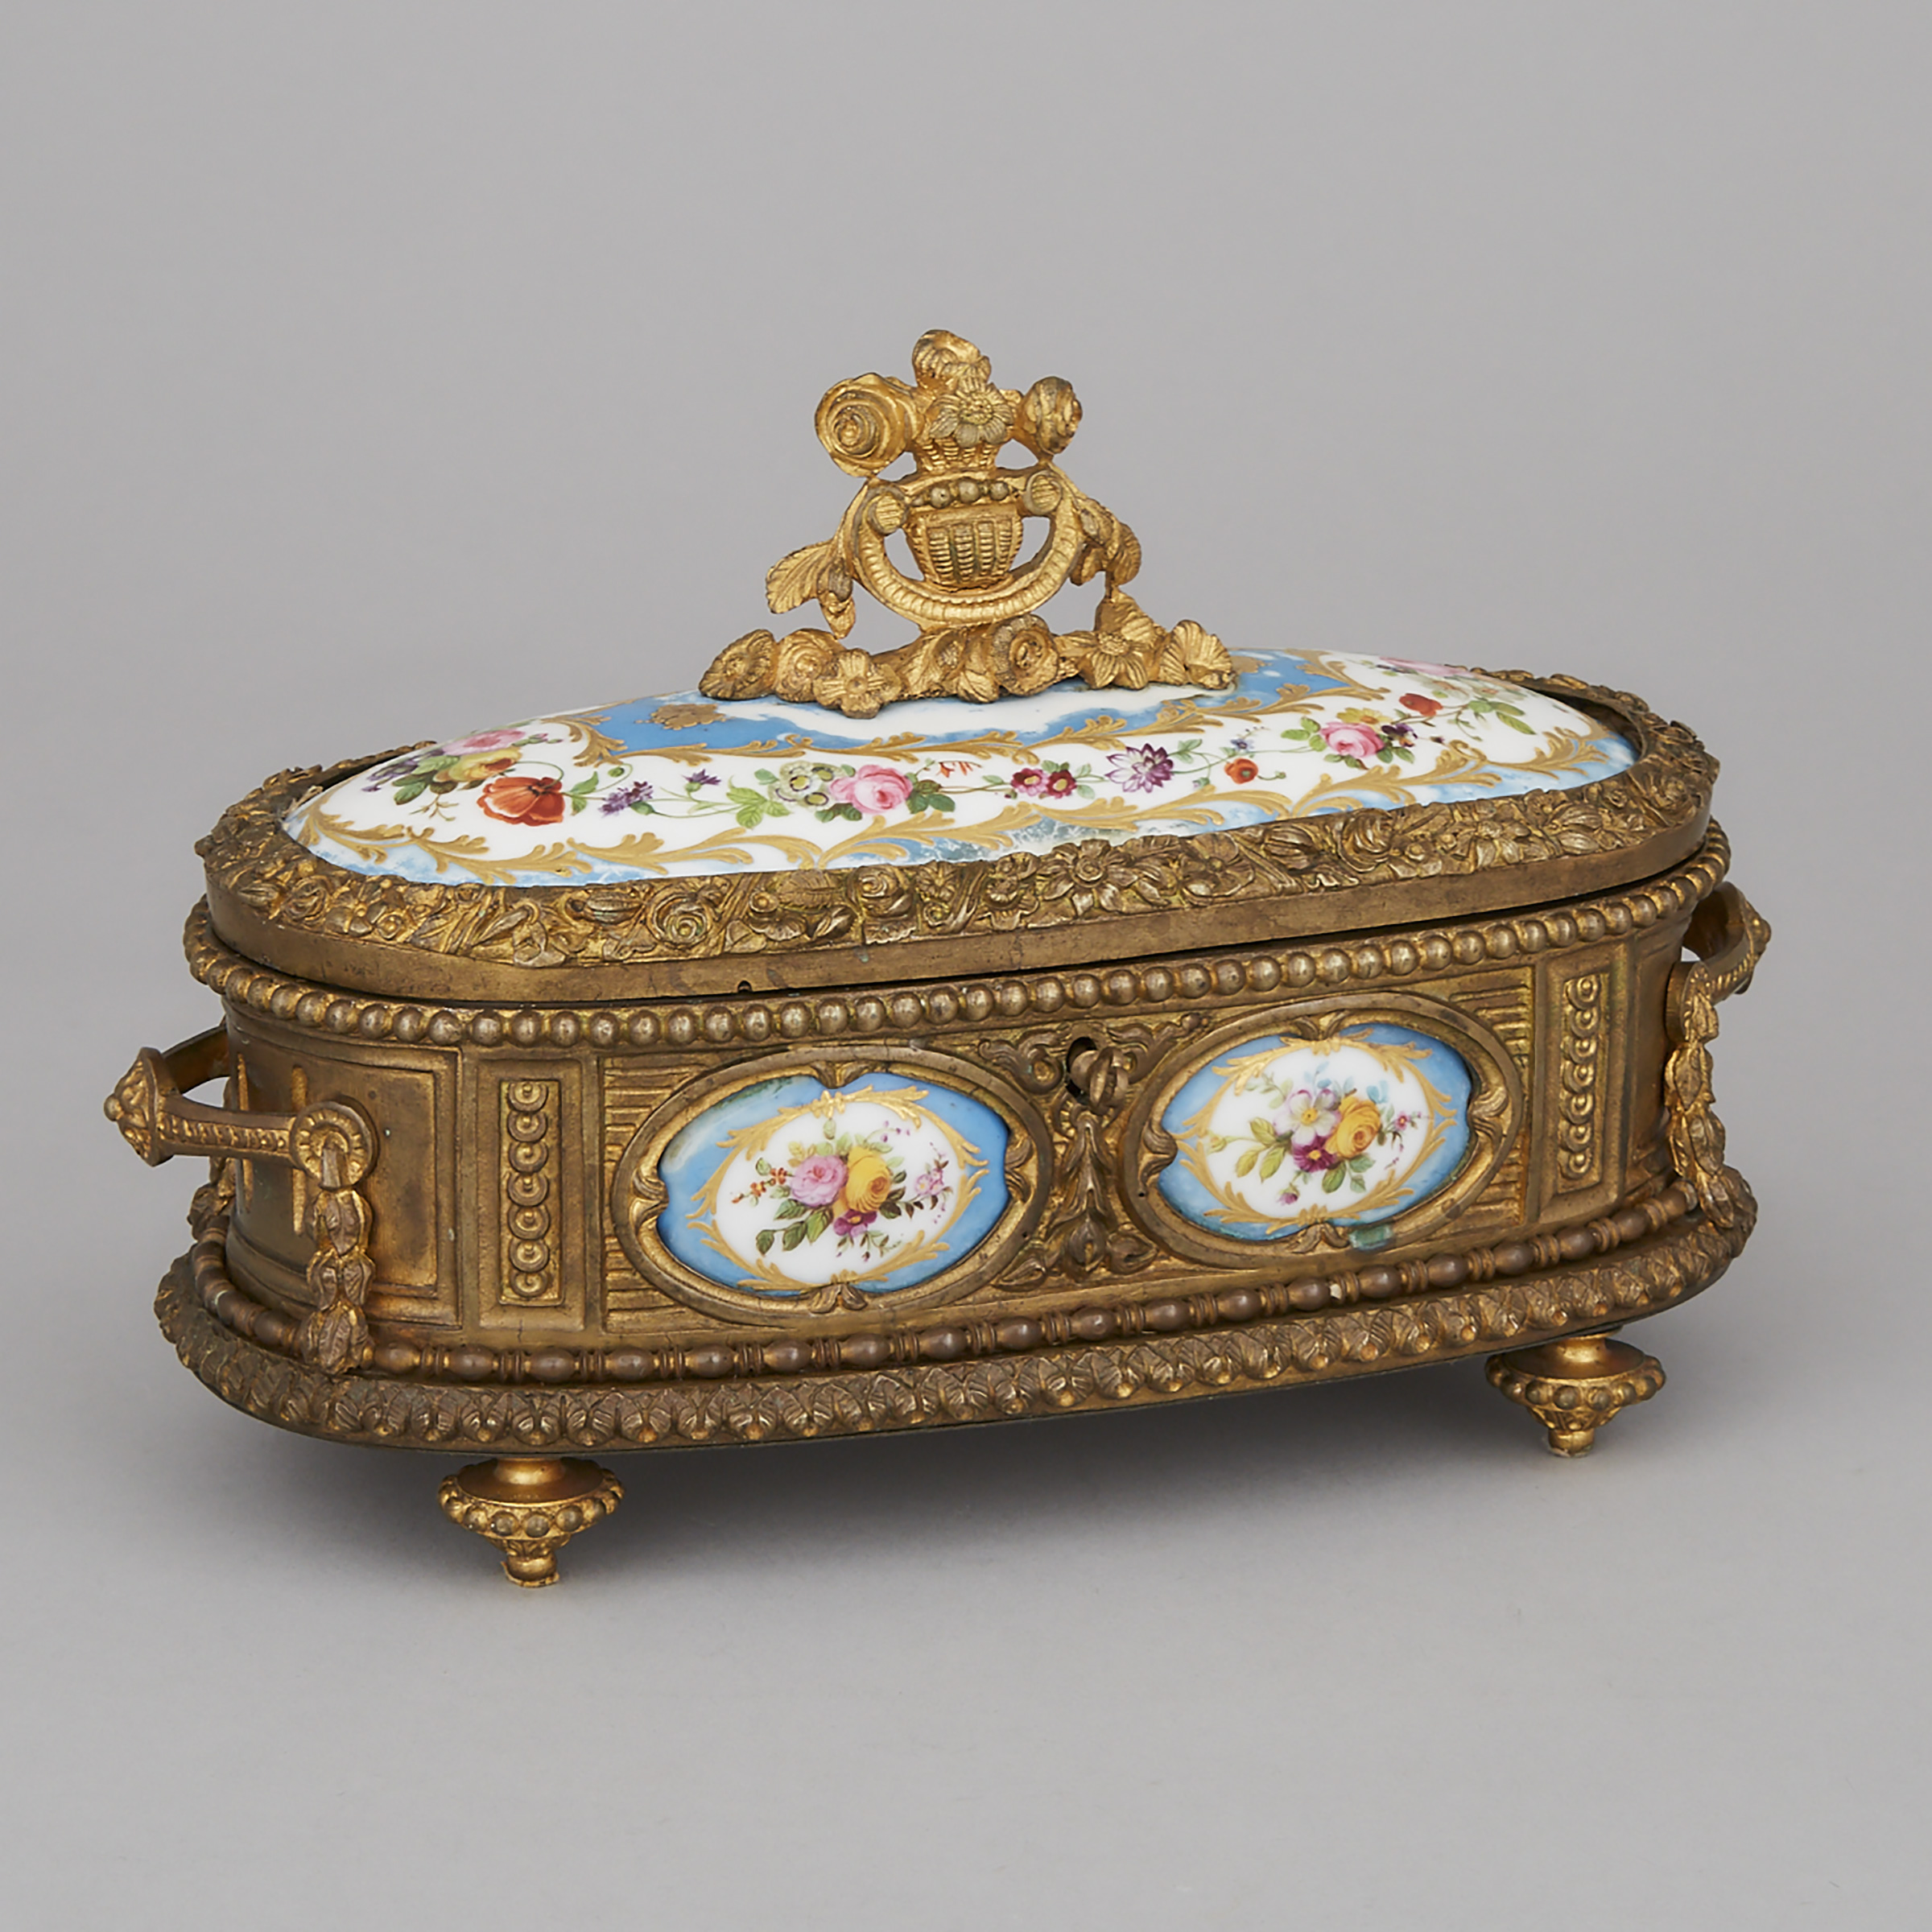 French 'Sèvres' Porcelain Mounted Gilt Bronze Oval Casket, late 19th century